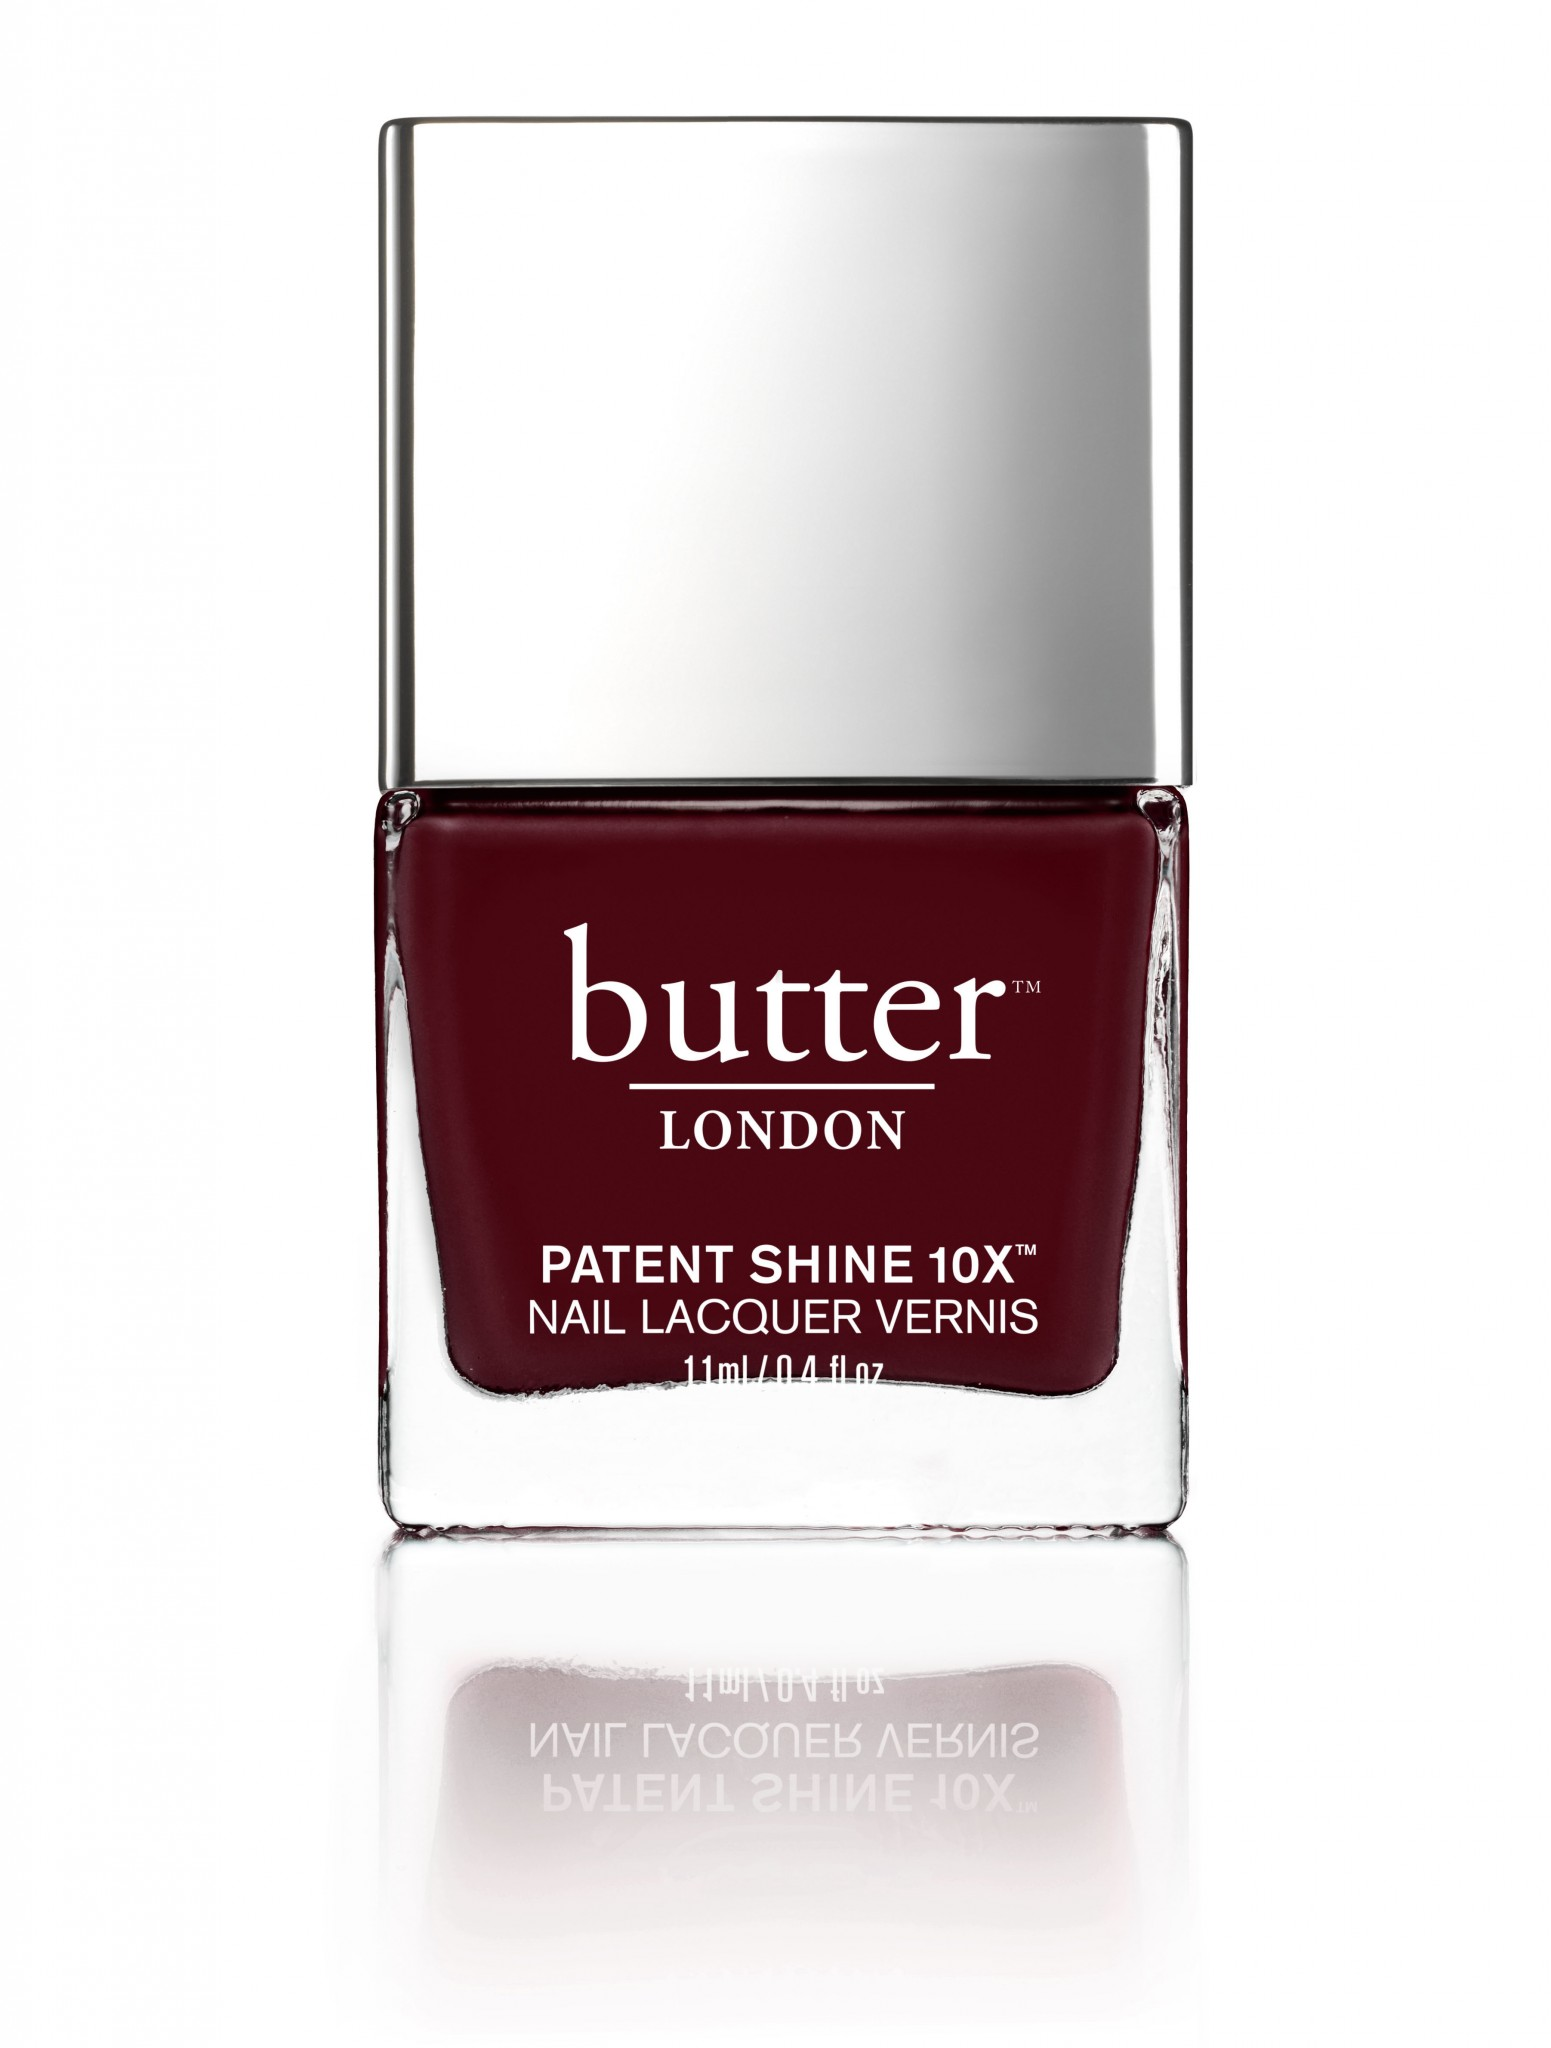 Butter London introduces Sheer Wisdom and Patent Shine nail varnishes